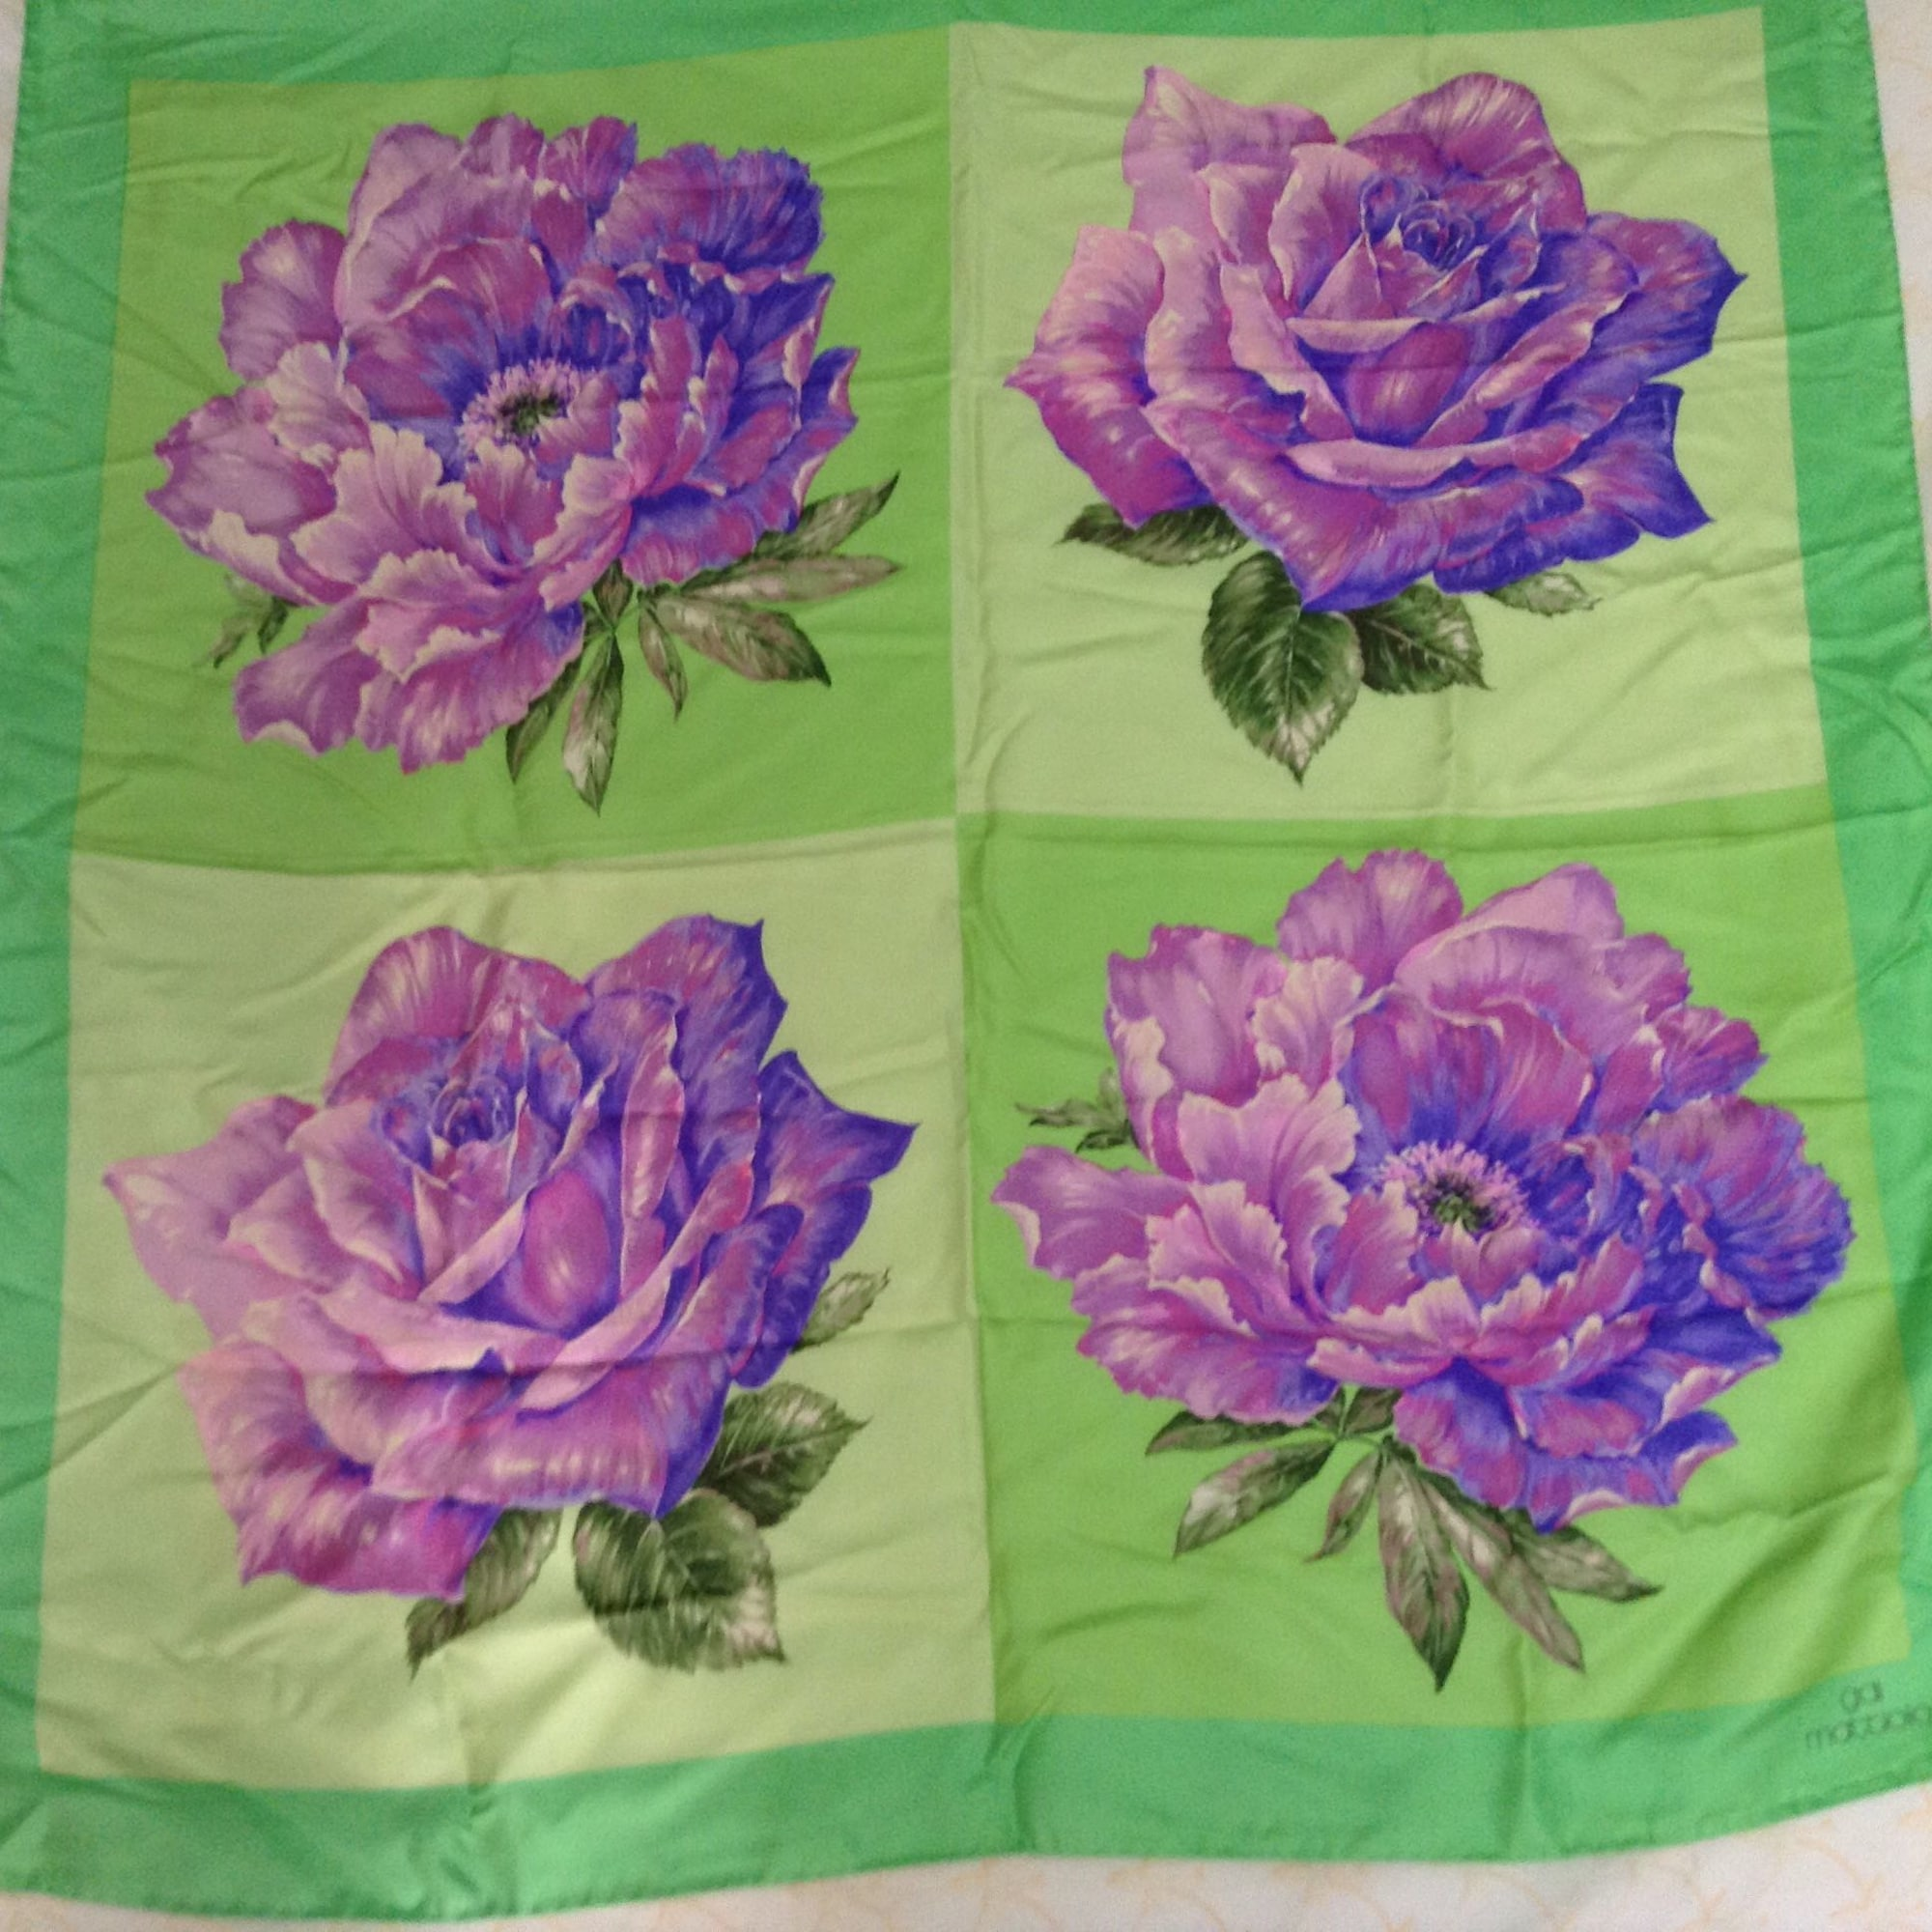 competitive price 7bd90 ff513 Foulard